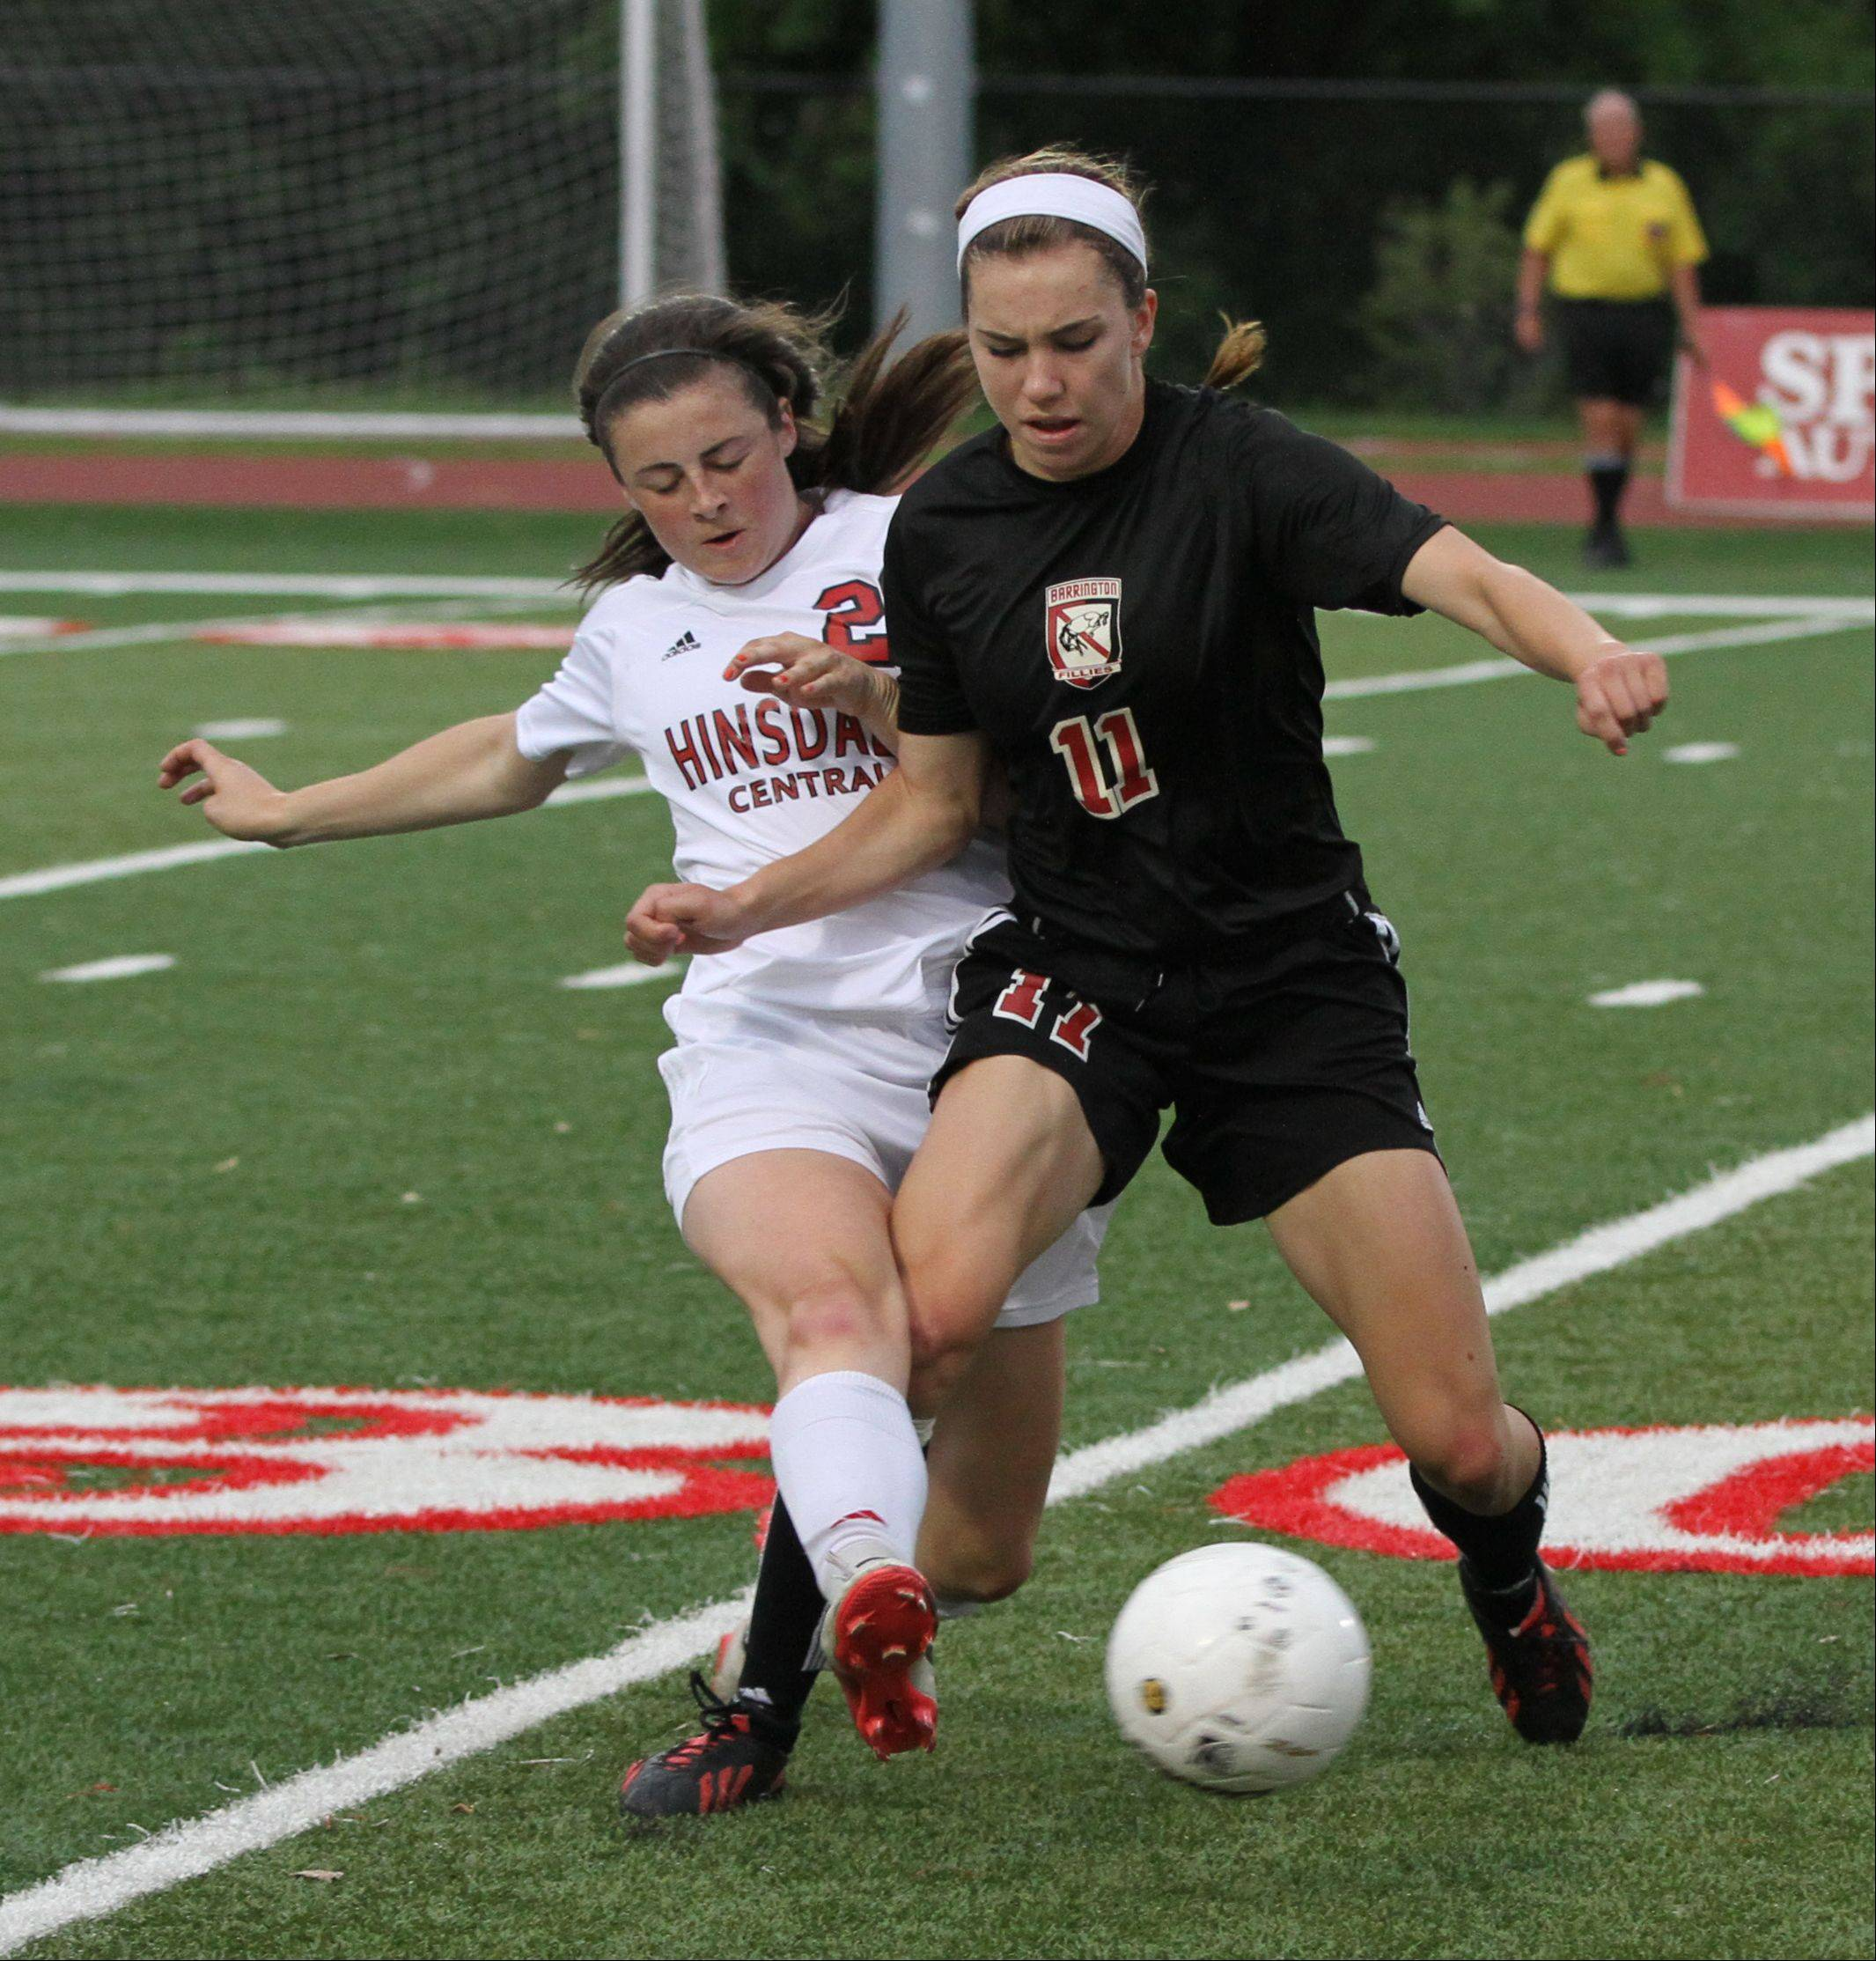 Hinsdale Central's Katie Camden, left, battles Barrington forward Jenna Szczesny in the Class 3A girls soccer state semifinals Friday at North Central College in Naperville.